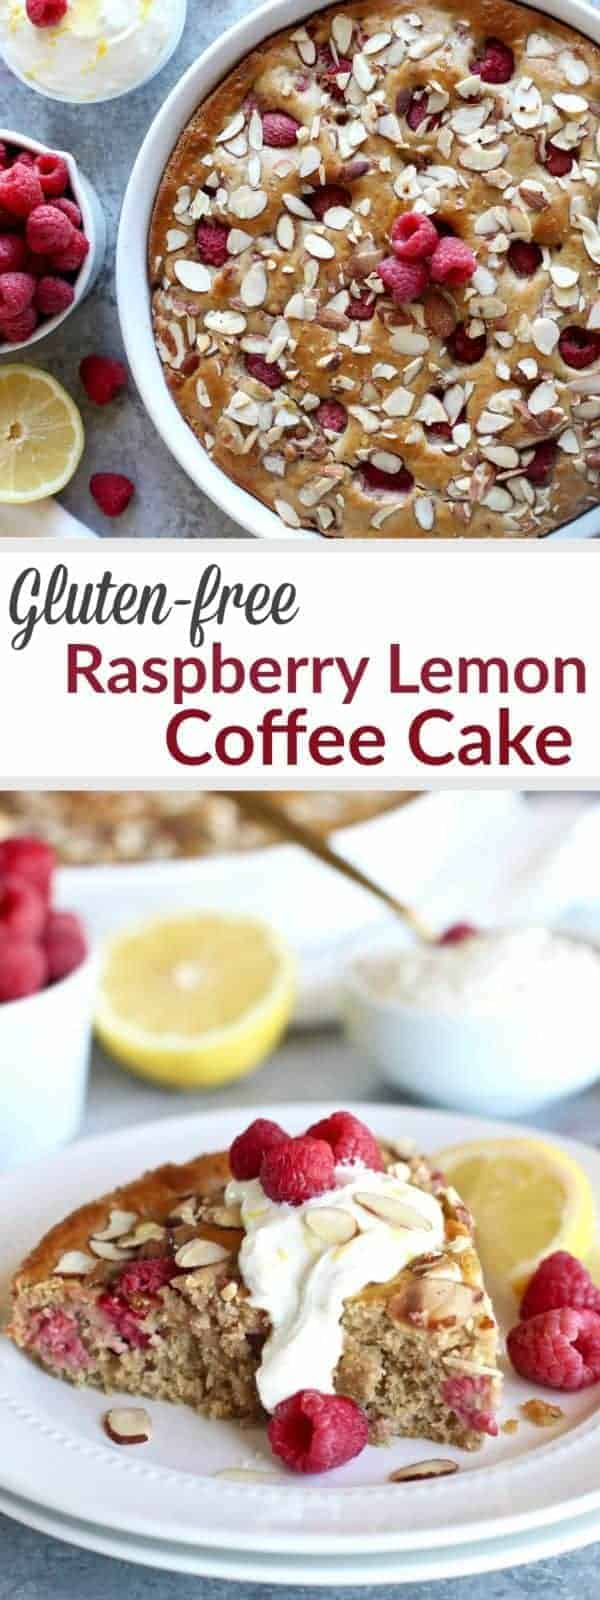 An oh so tasty Gluten-free Raspberry Lemon Coffee Cake topped with a Lemon Sour Cream Sauce is made healthy with wholesome ingredients & no refined-sugars. | The Real Food Dietitians | http://therealfoodrds.com/raspberry-lemon-coffee-cake/